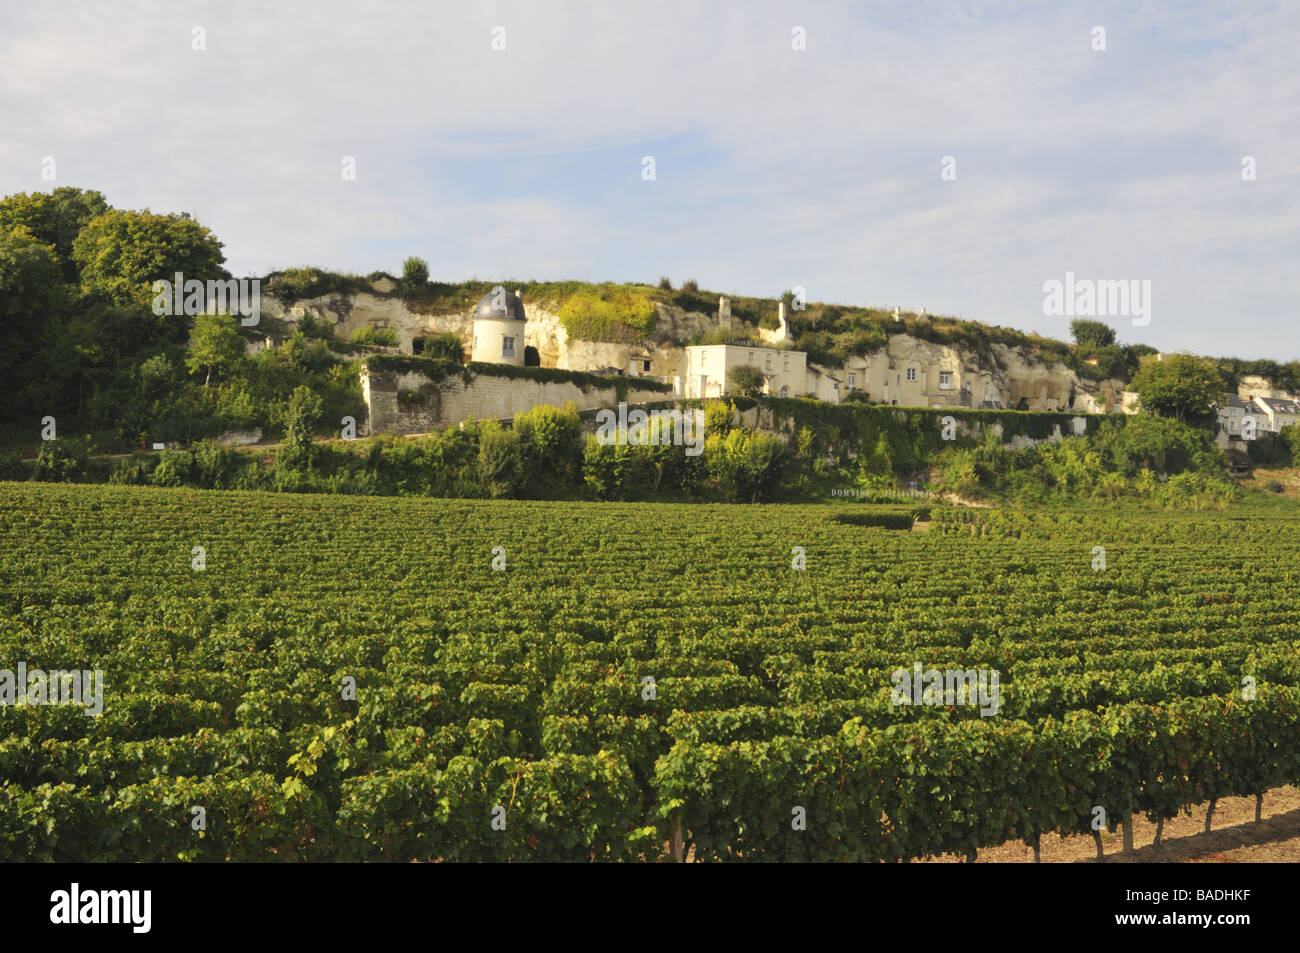 Domaine Filliatreau vineyard in the Loire valley France - Stock Image